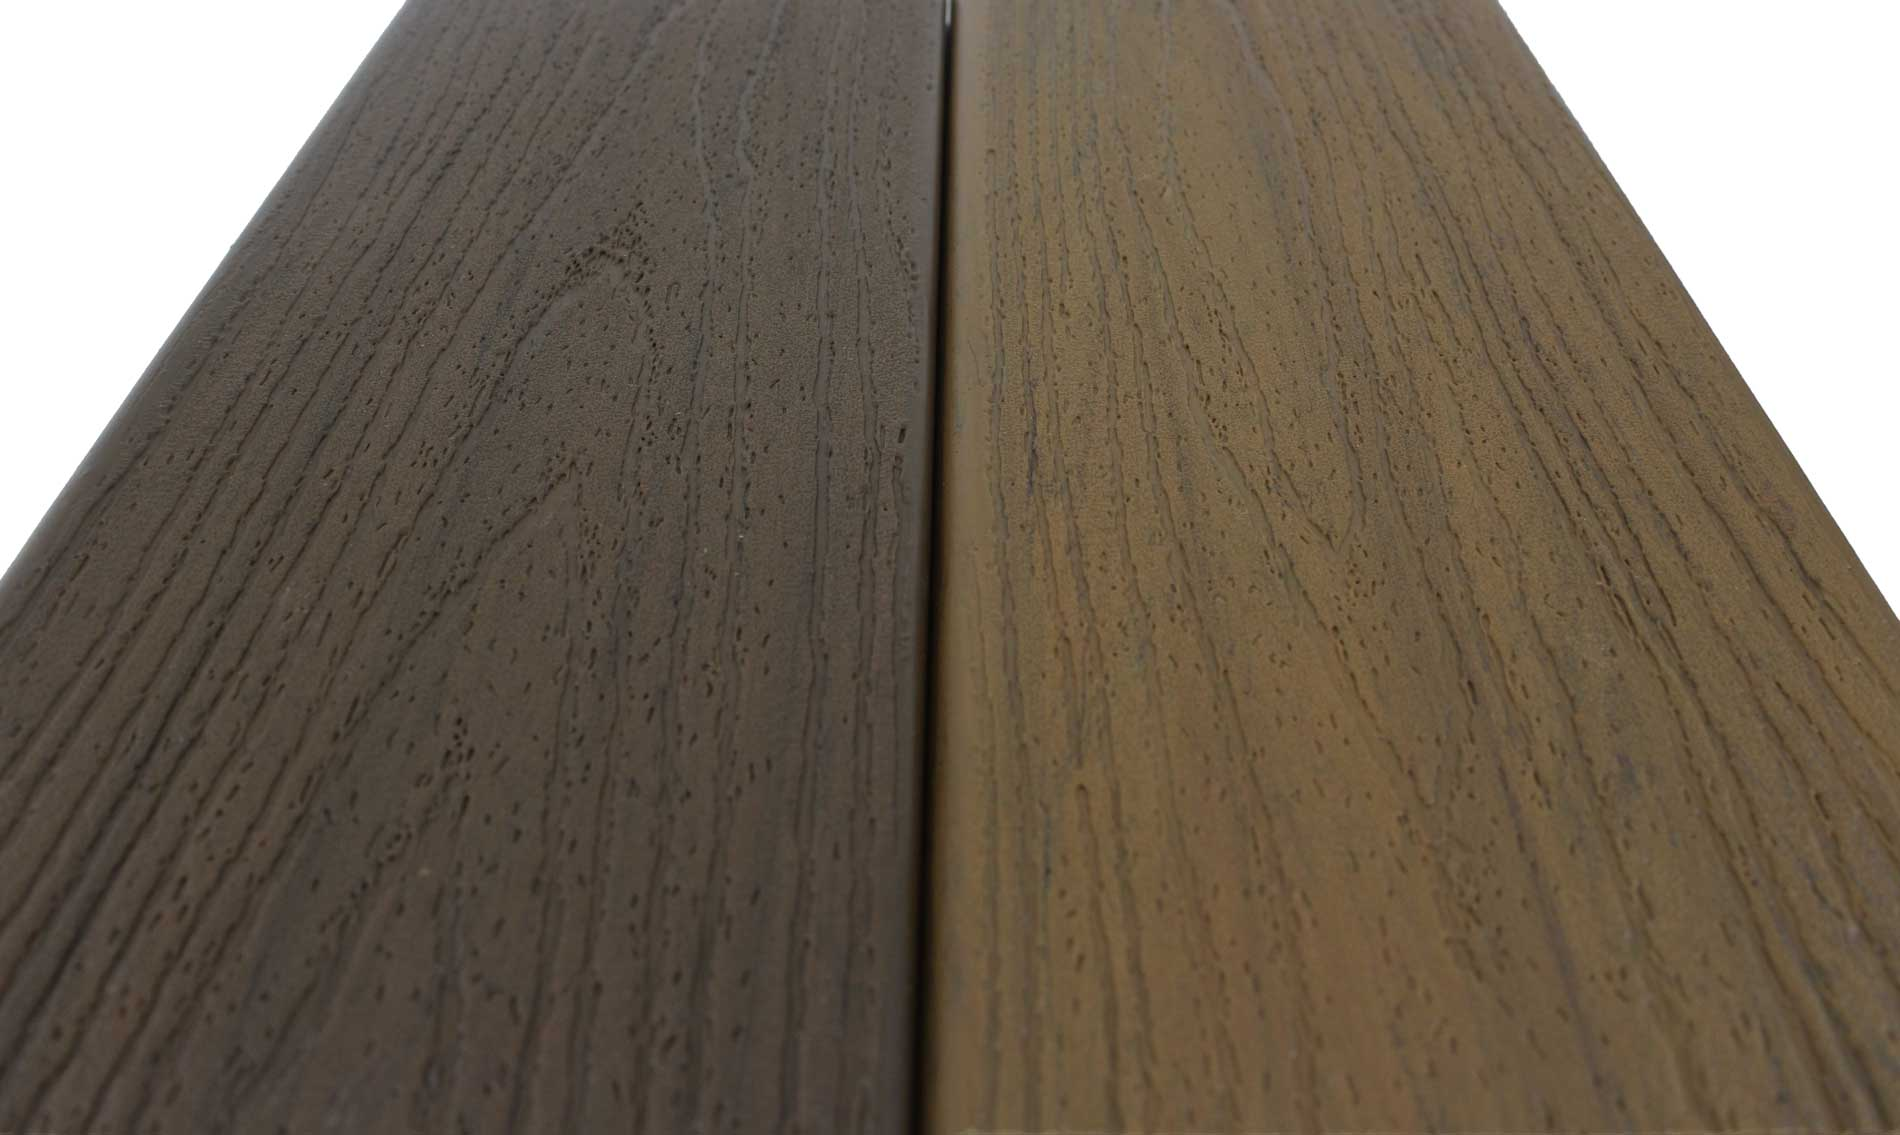 posite Decking Board Ezdeck Elite Decking